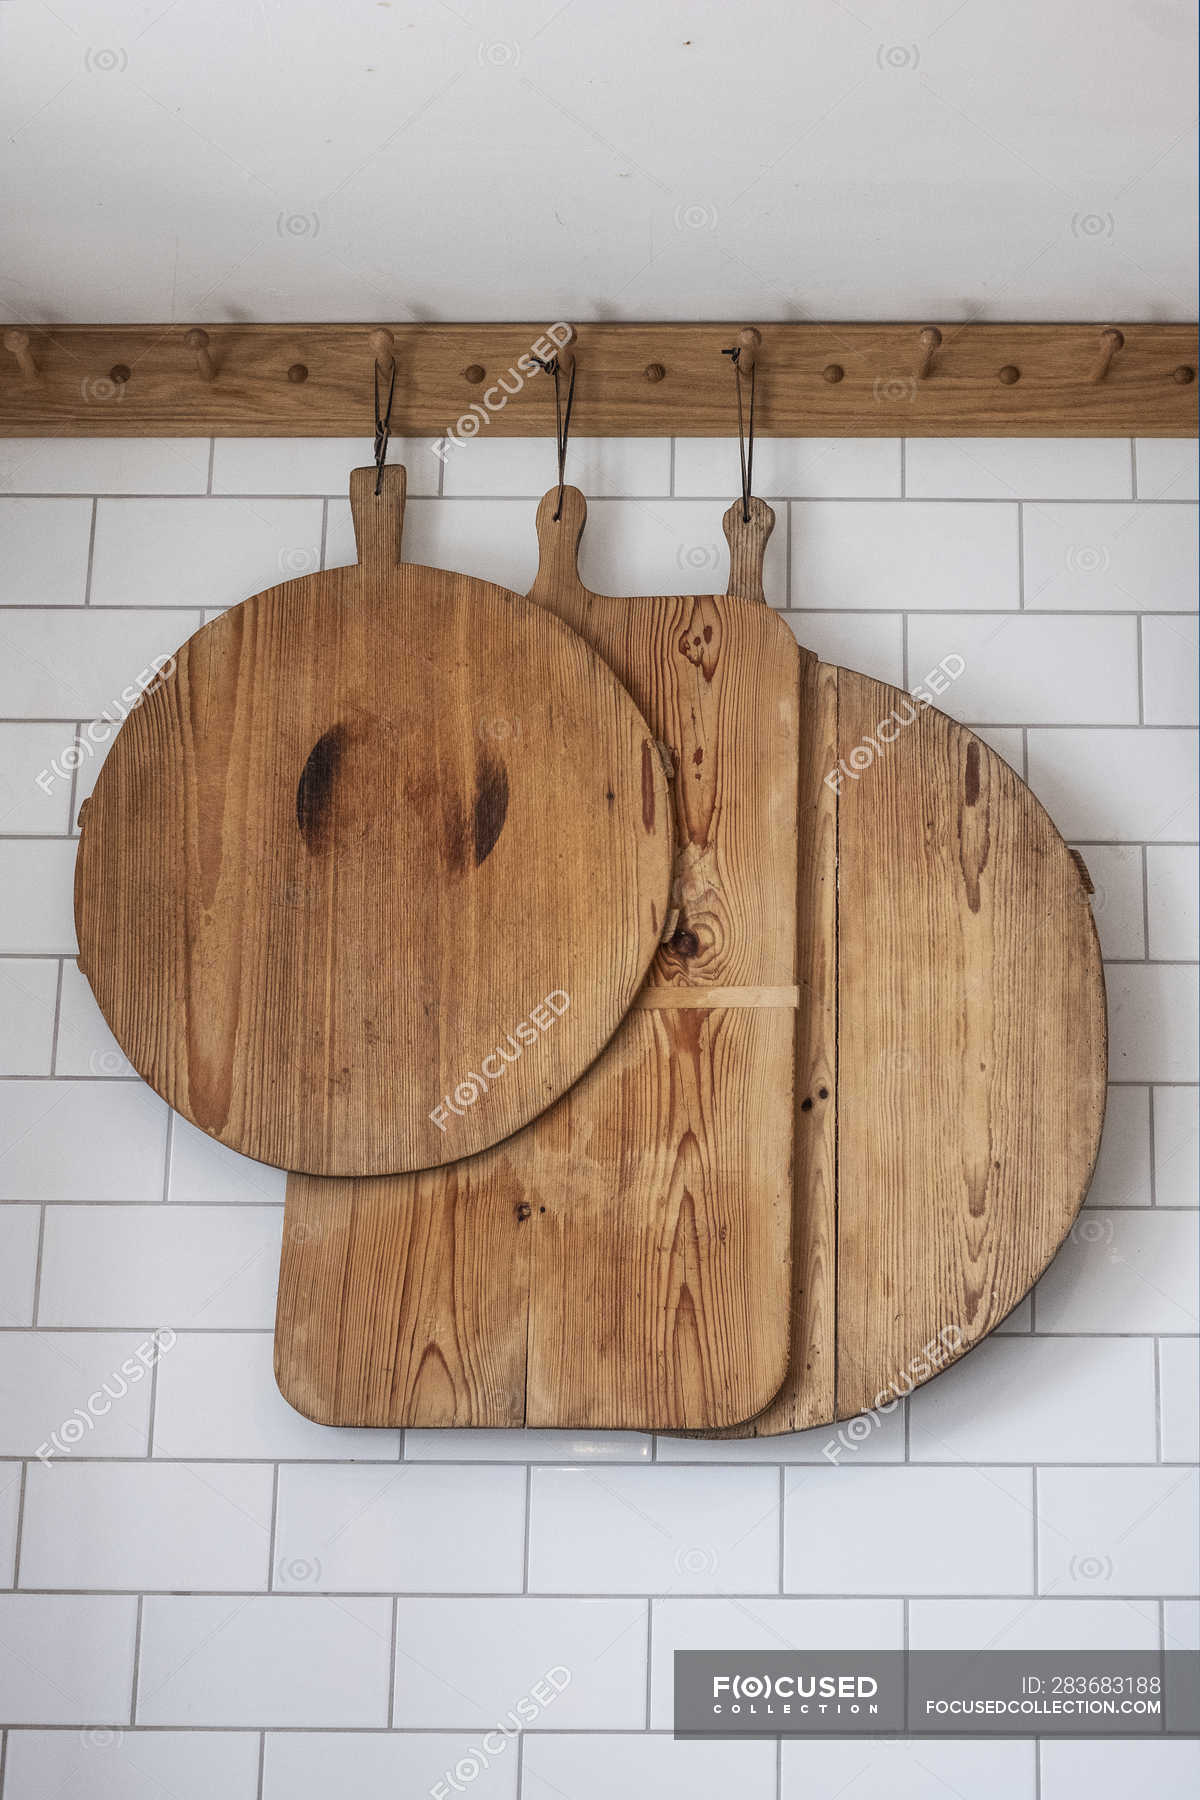 Small Selection Of Wooden Cutting Boards Hanging On Tiled White Wall Vertical Tiles Stock Photo 283683188